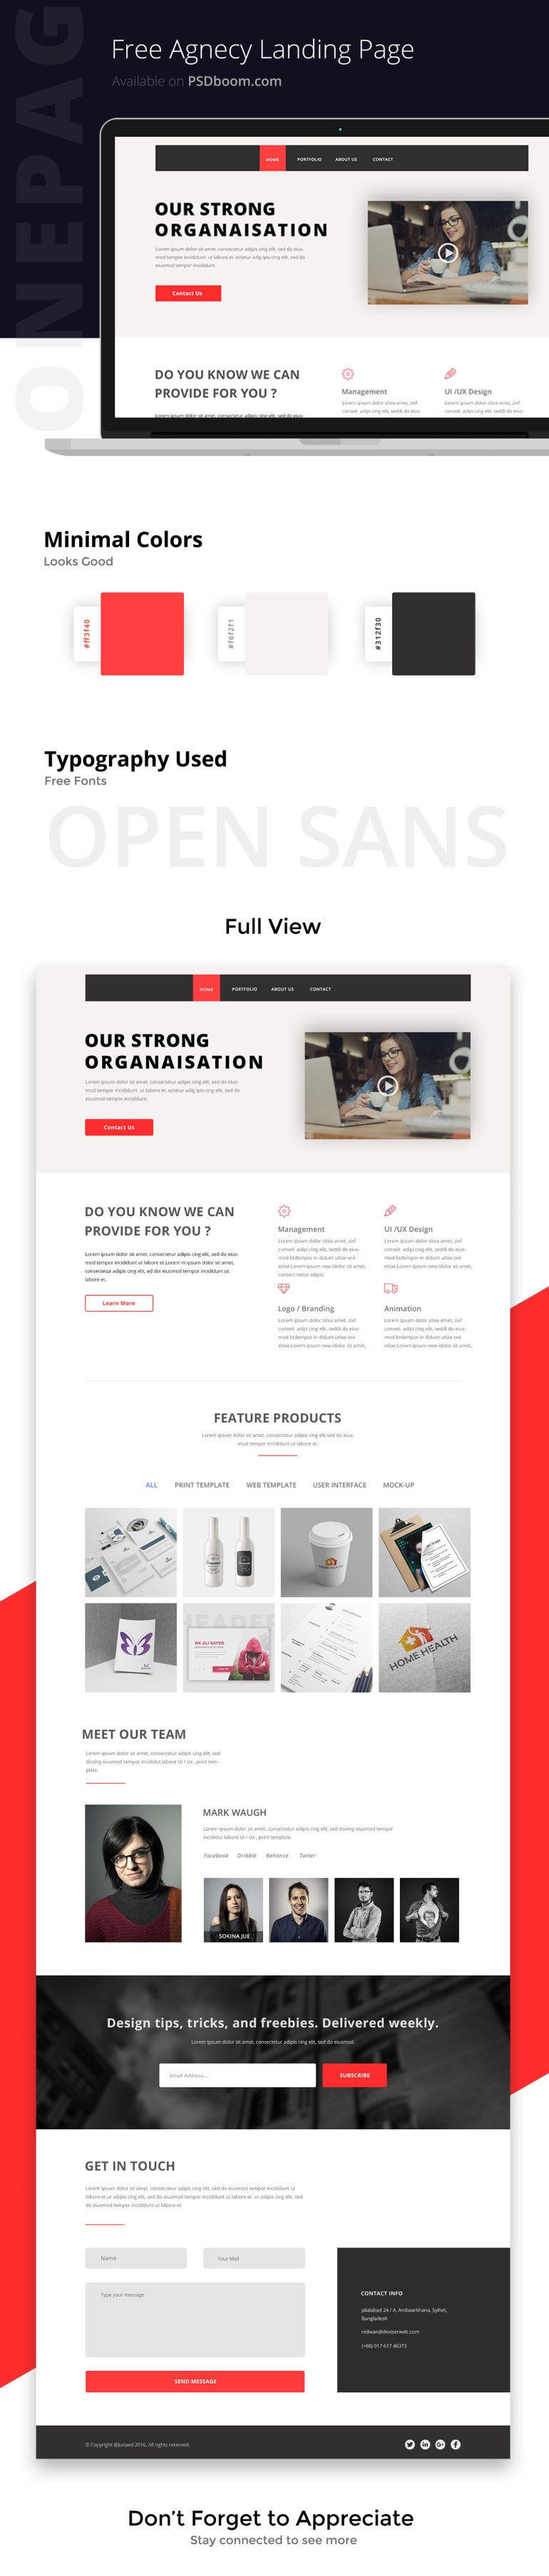 free-psd-agency-corporate-landing-page-template-1170-grid-bootstrap